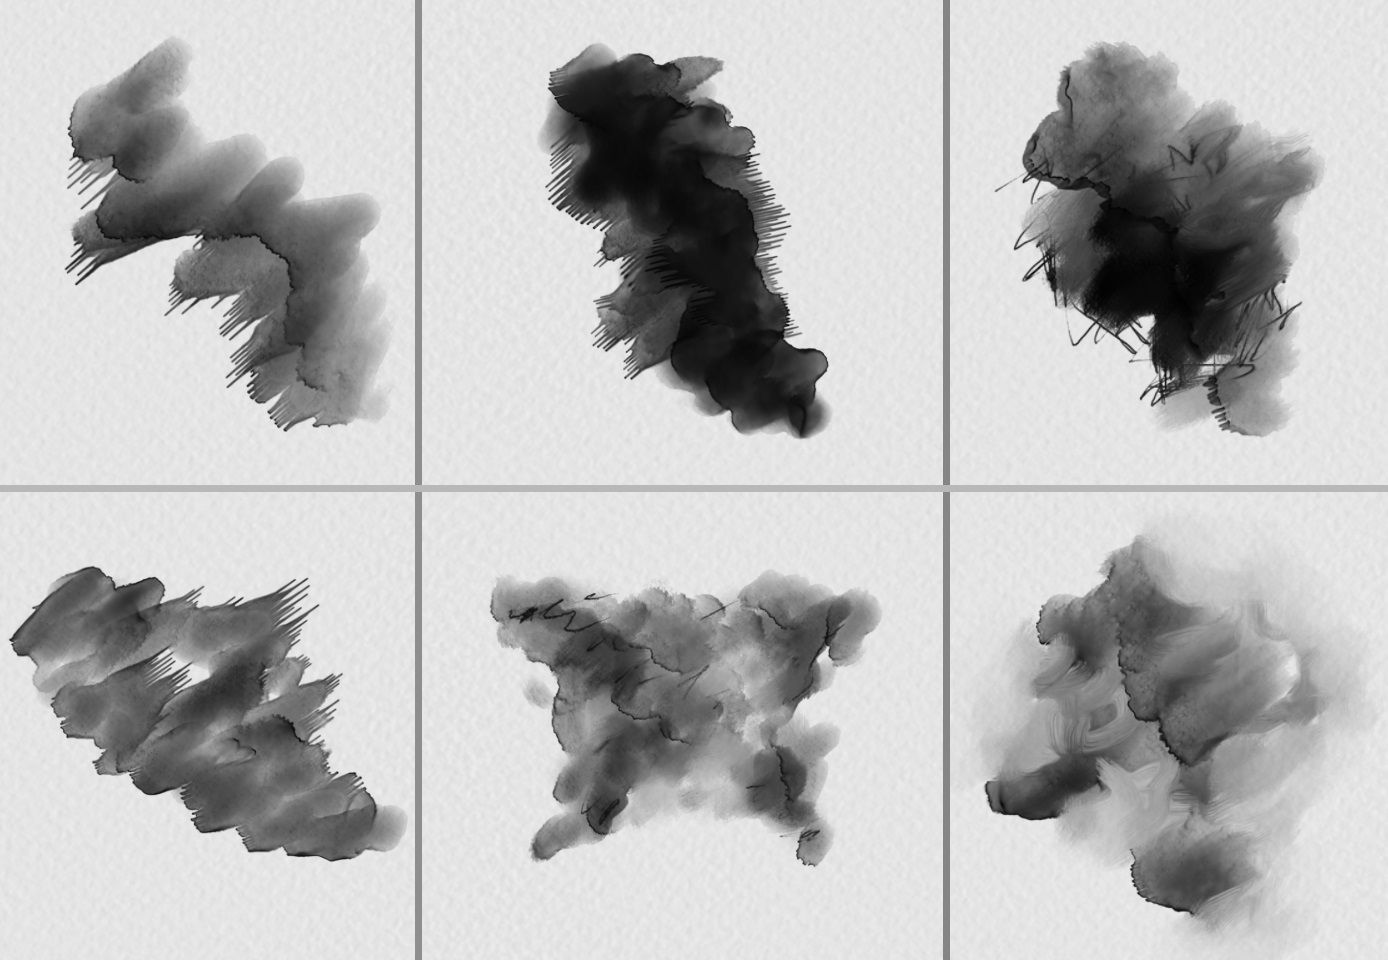 Free High Res Watercolour Photoshop Brushes Set 1 Photoshop